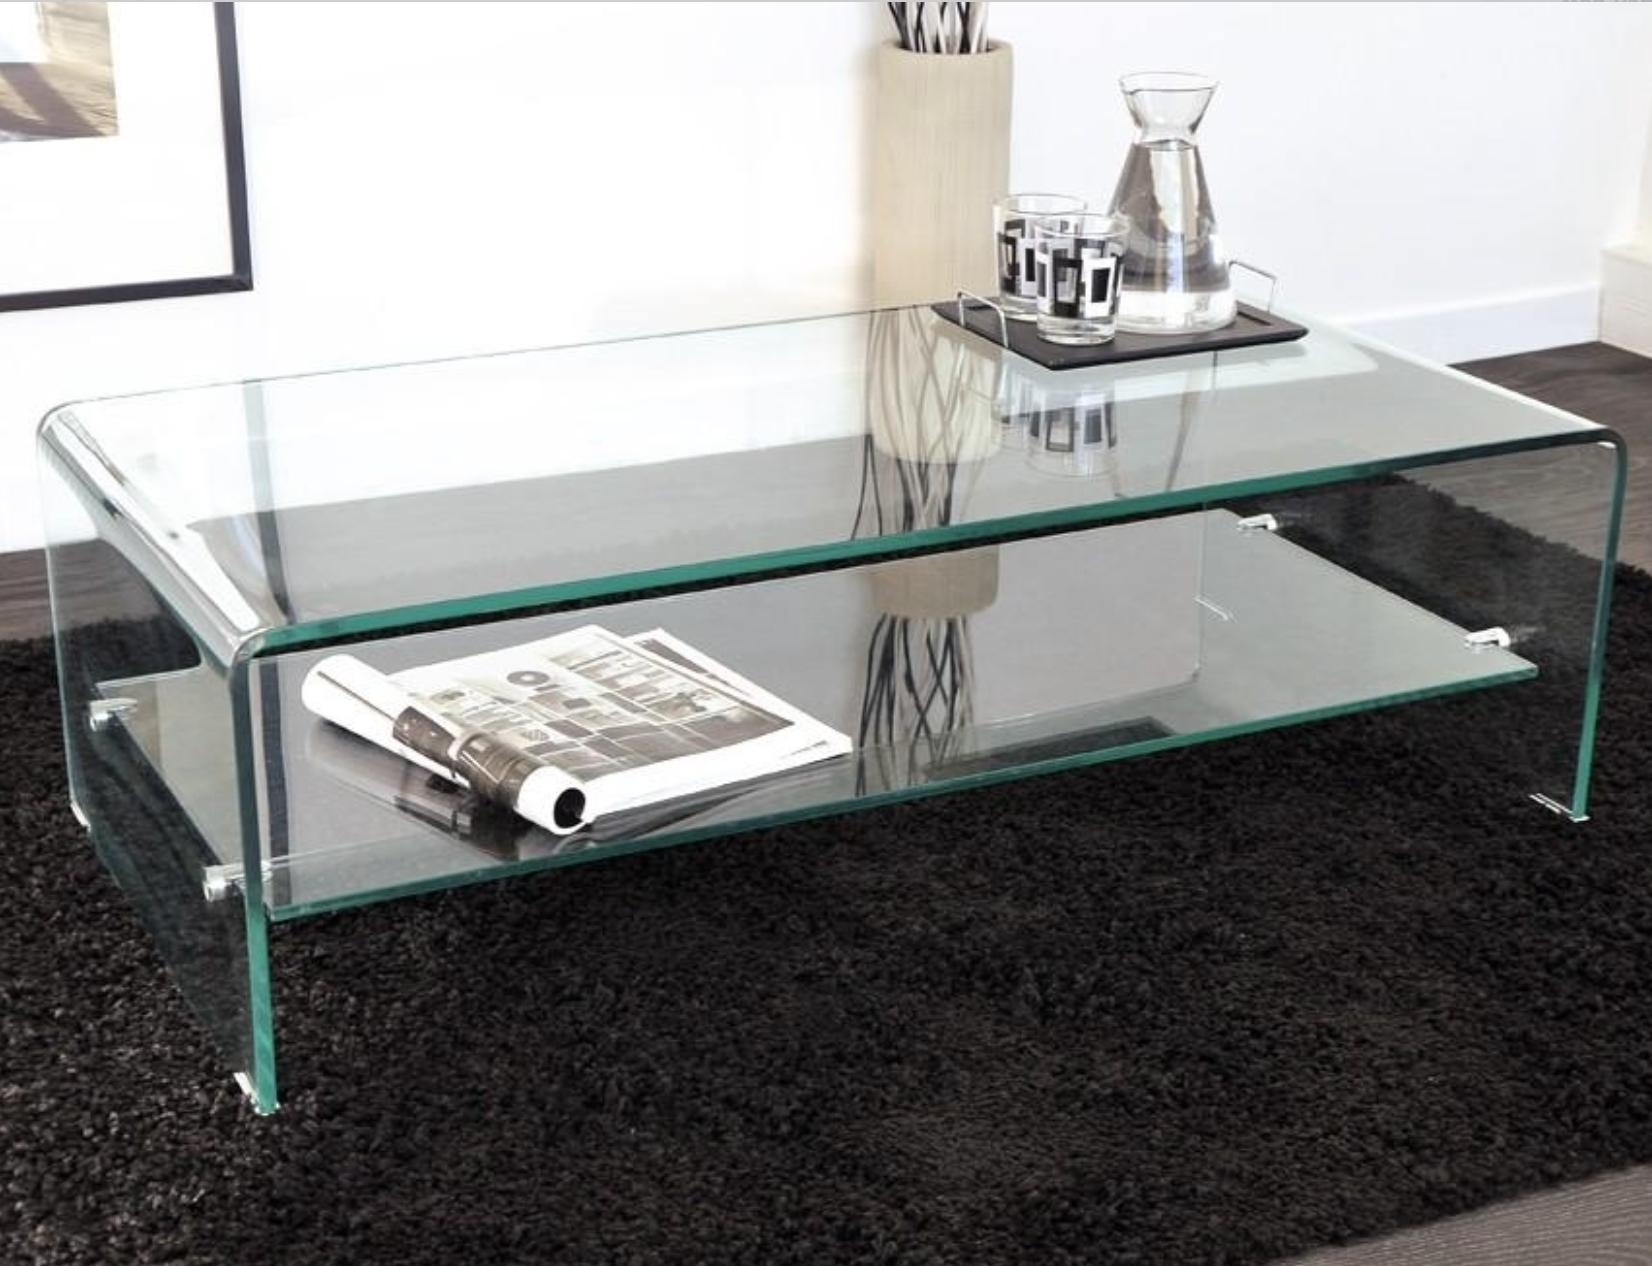 Table basse verre tremp stella - Table basse salon verre ...